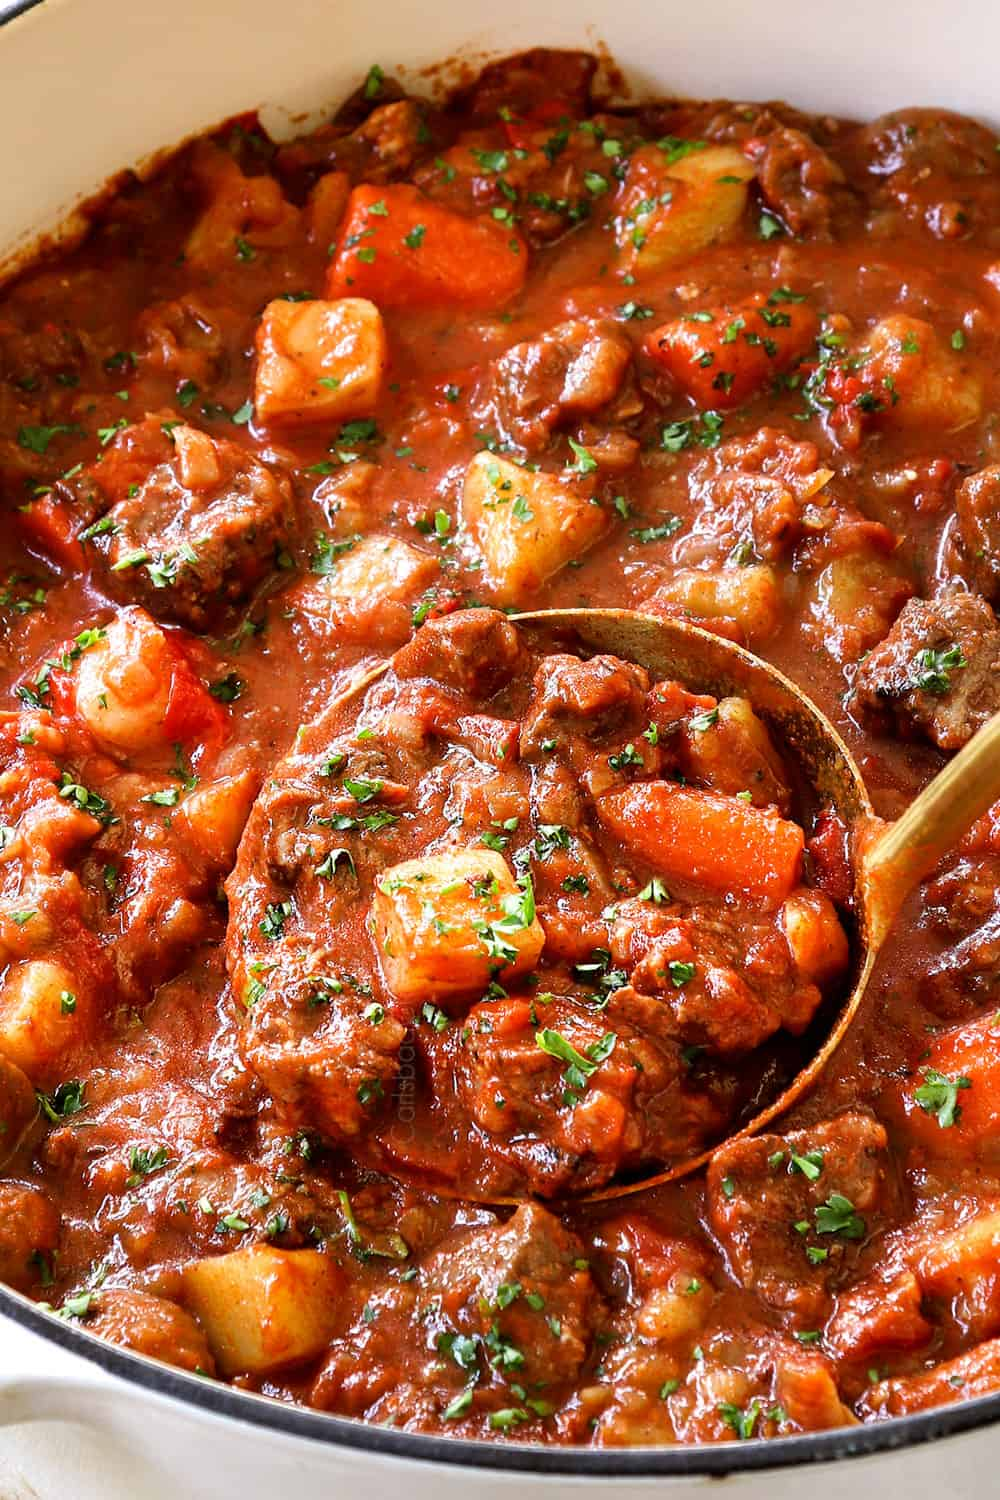 up close of goulash showing the rich, thick consistency